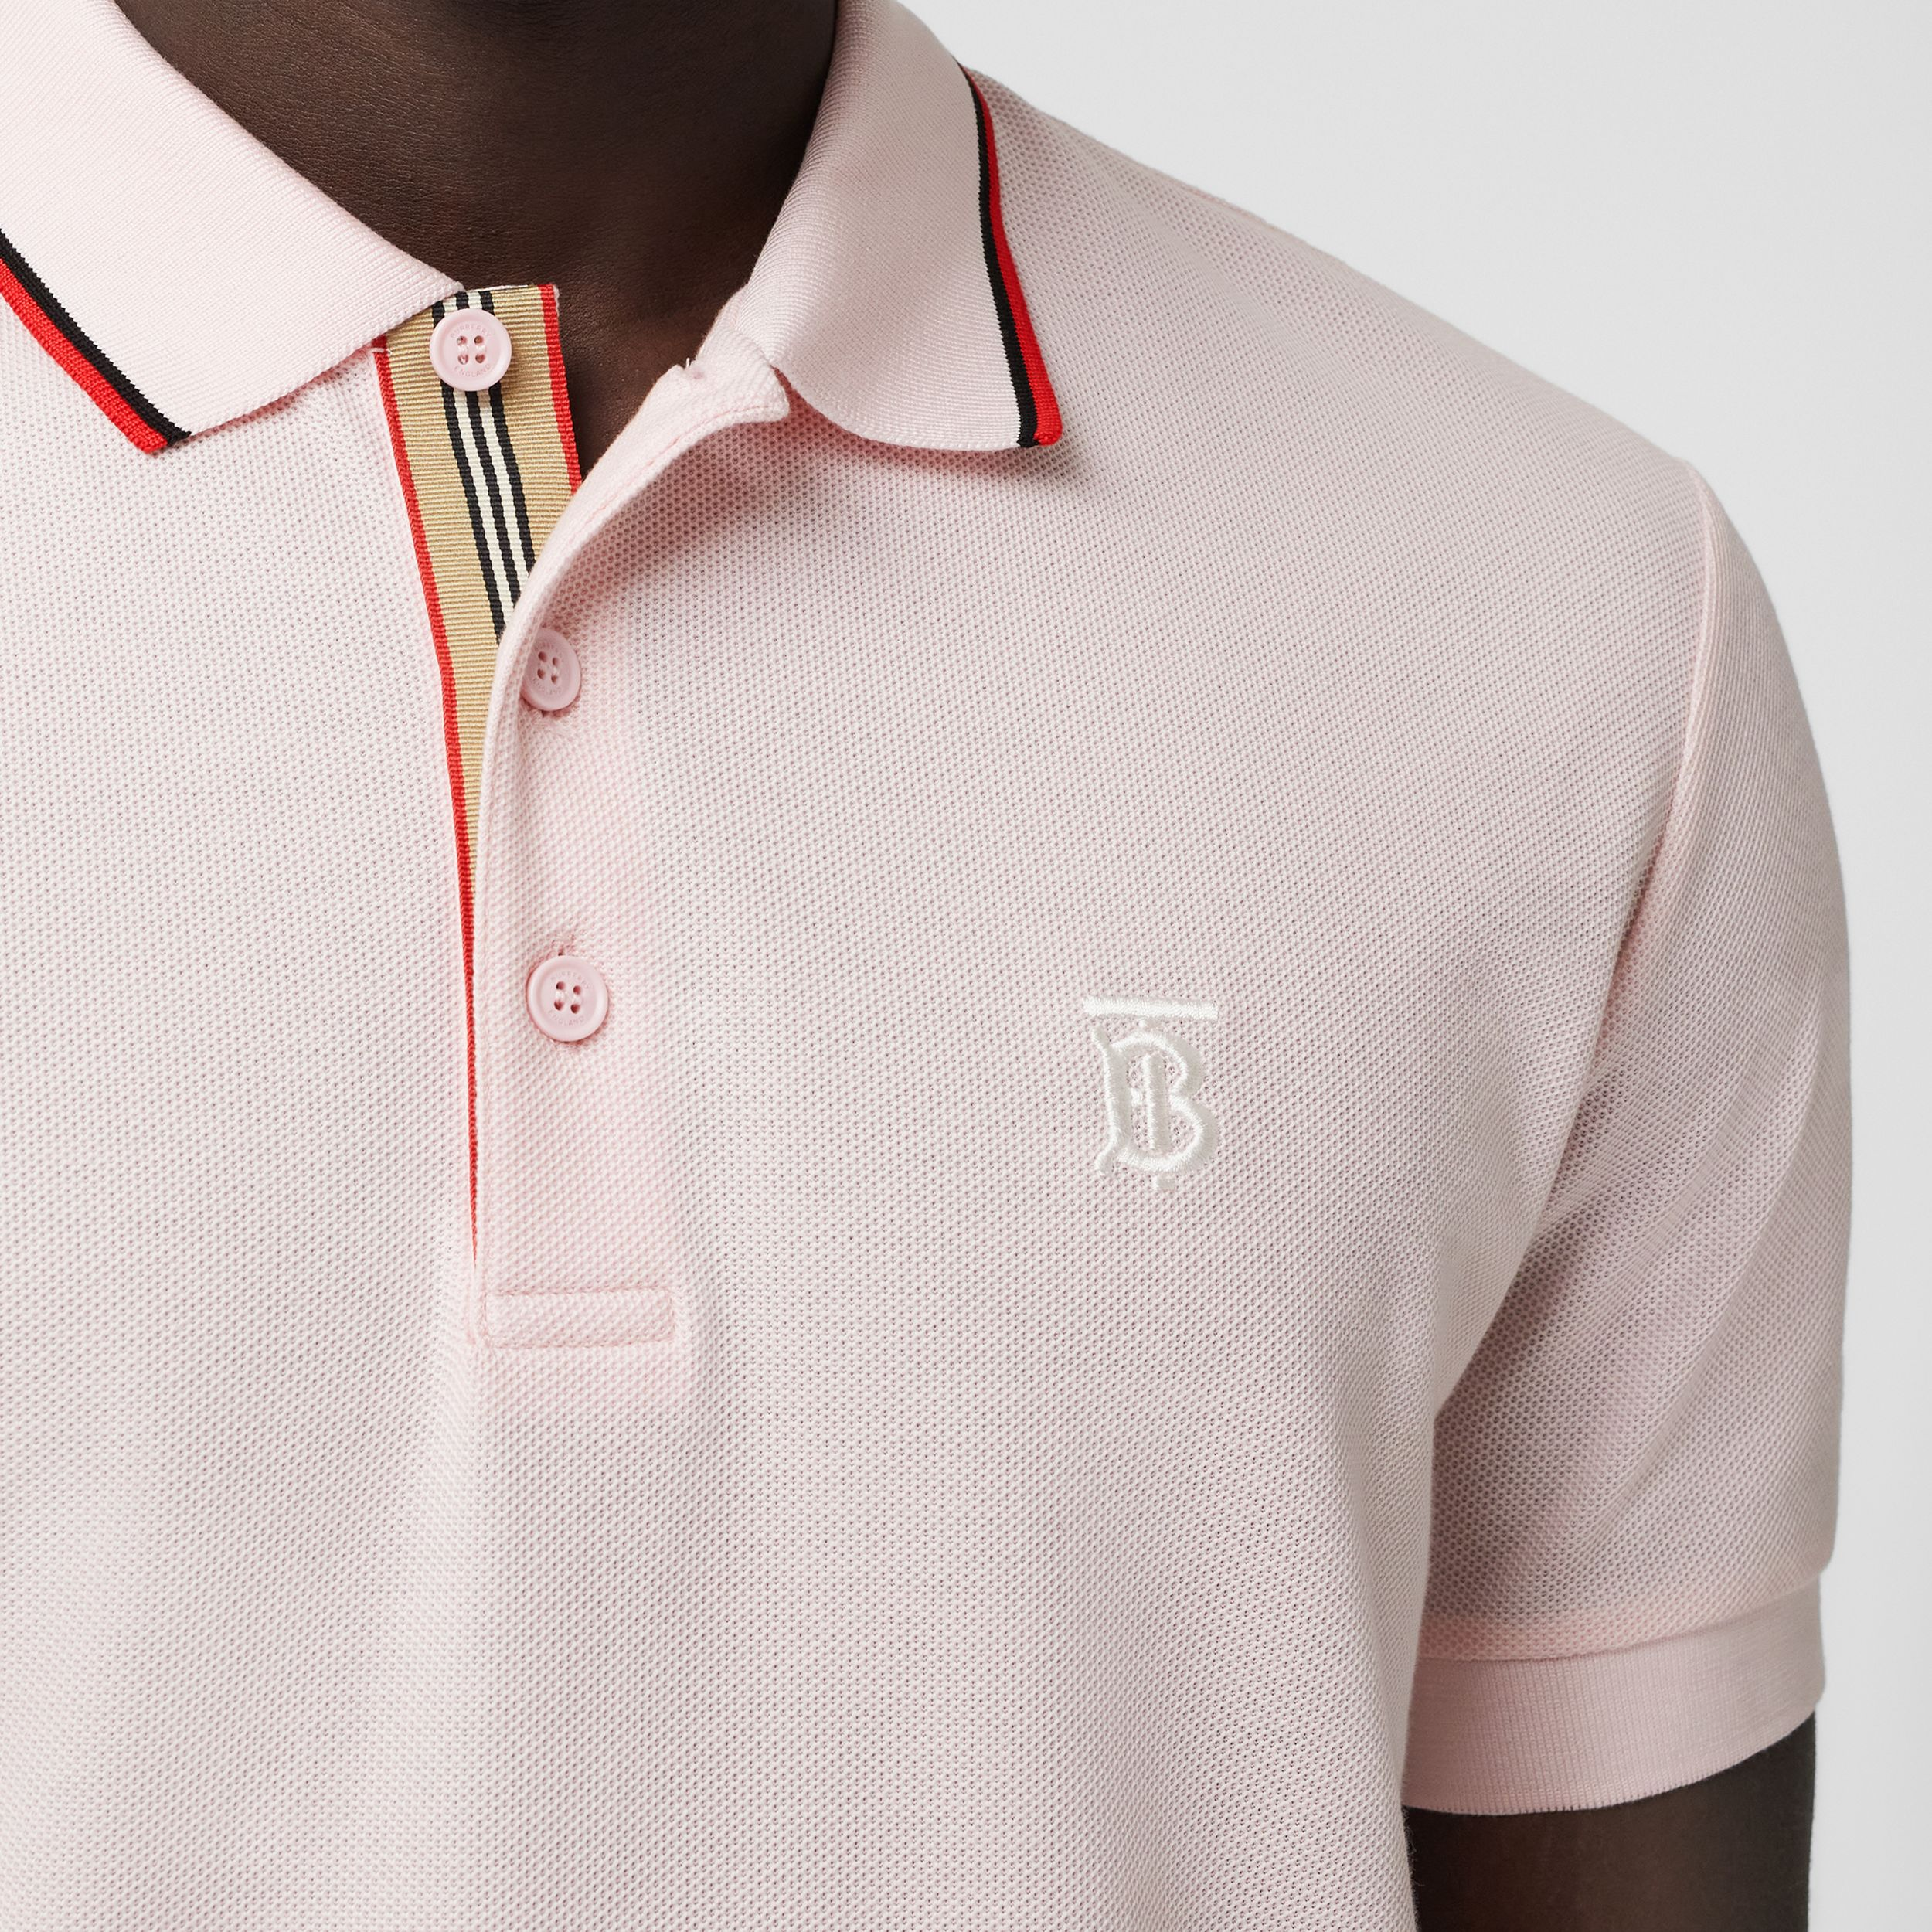 Monogram Motif Cotton Piqué Polo Shirt in Frosted Pink - Men | Burberry - 2